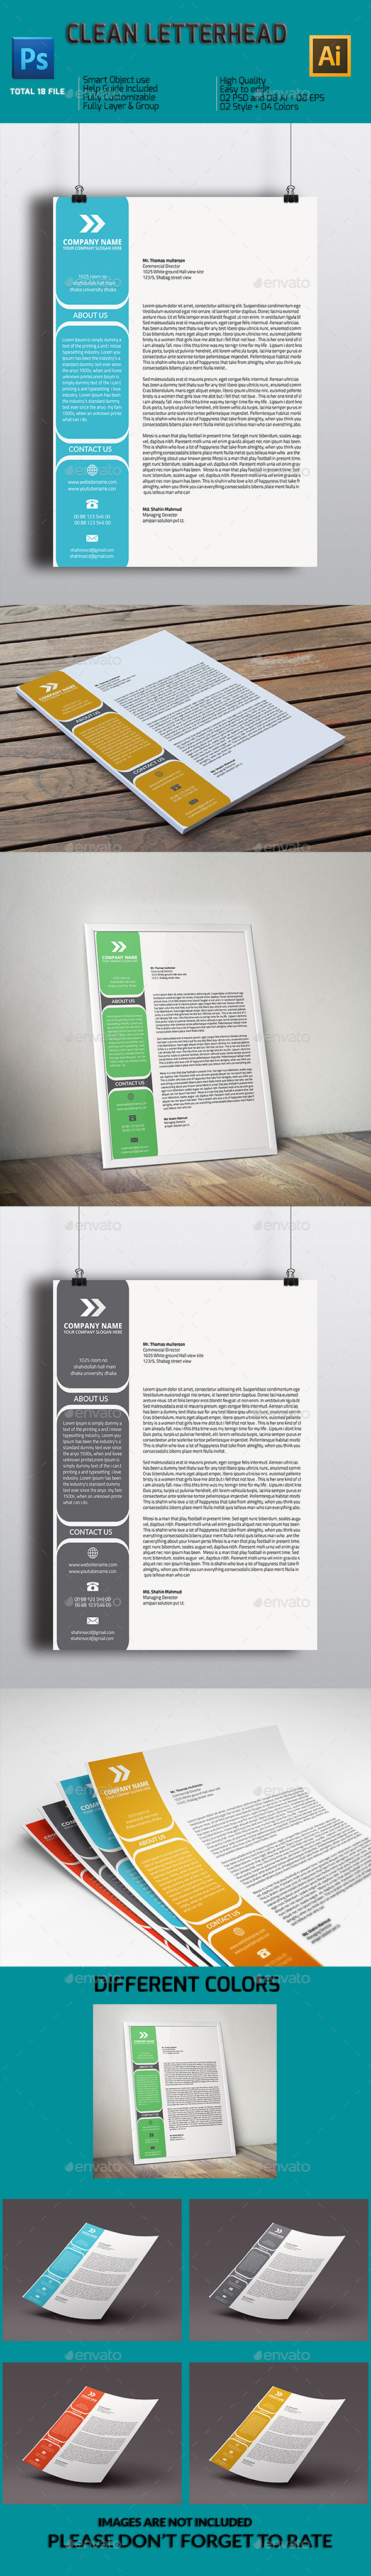 GraphicRiver Clean Letterhead 11199024